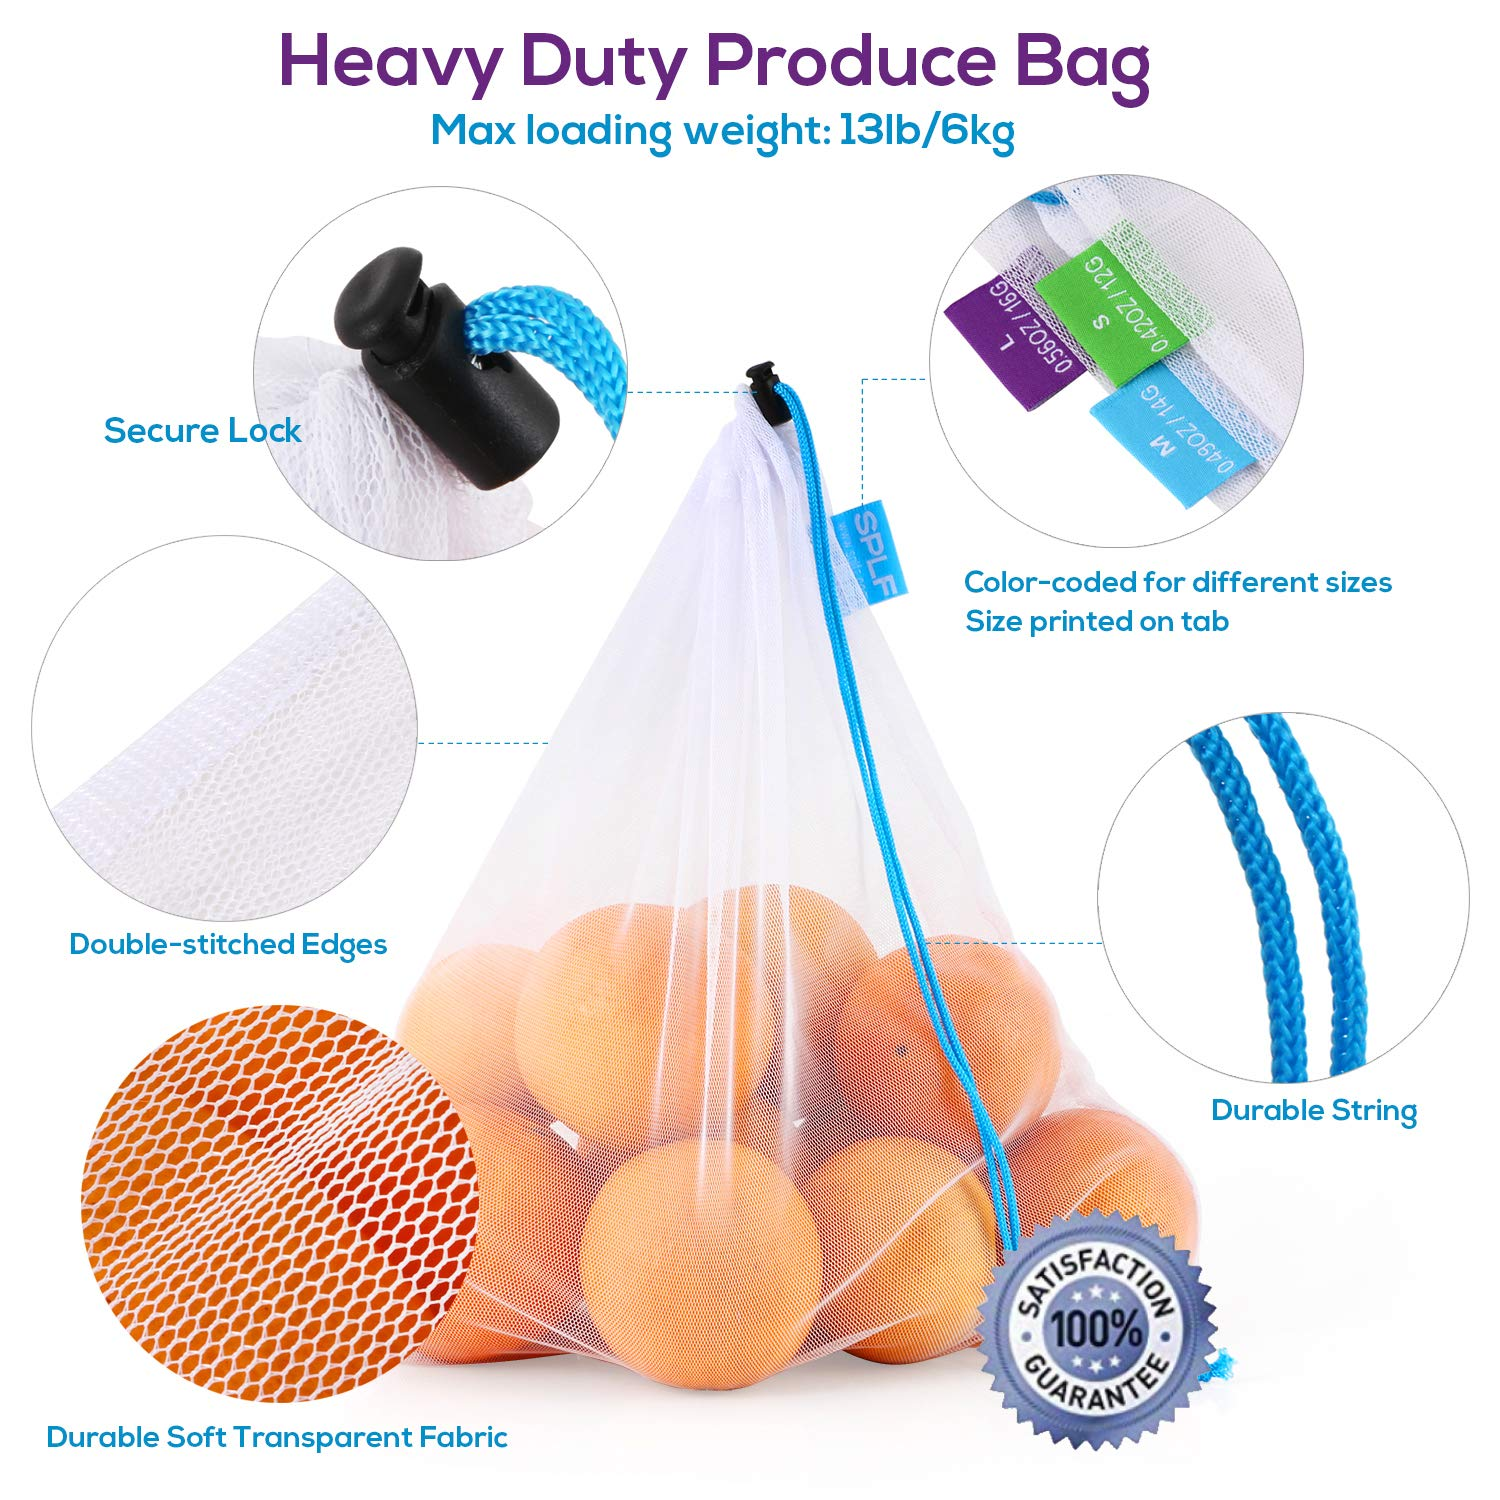 SPLF 12 Pcs Heavy Duty Reusable Mesh Produce Bags, Barcode Scanable See Through Food Safe Mesh Bags with Drawstring for Fruits, Vegetable, Food, Toys, Grocery Storage, Large Medium Small by SPLF (Image #4)